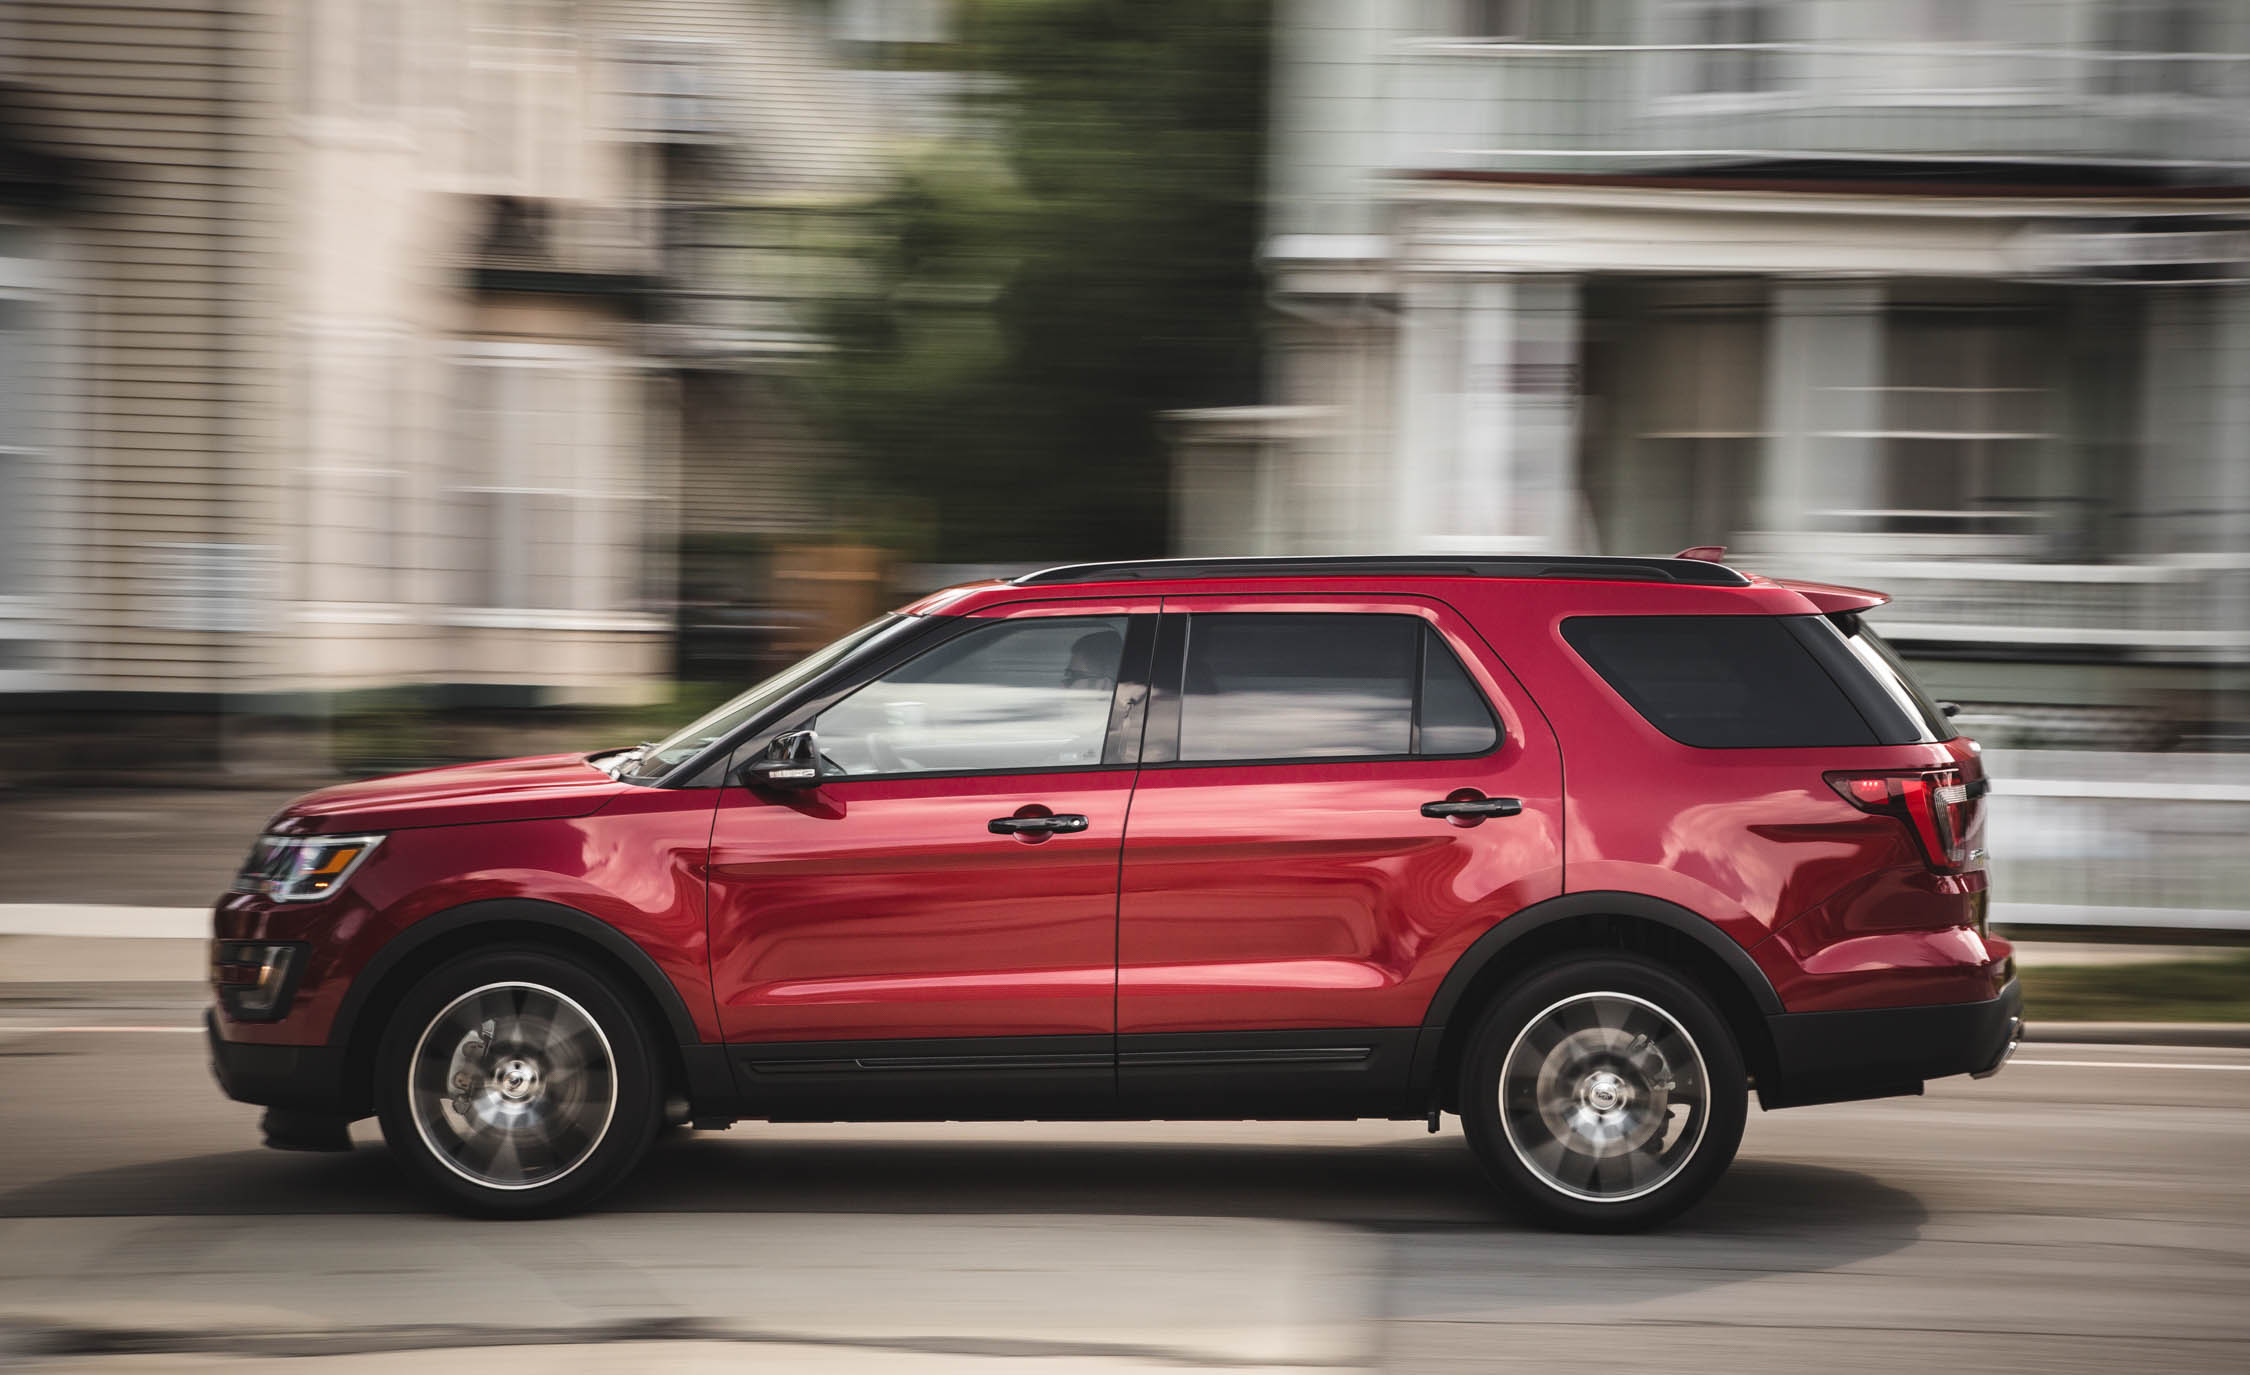 2016 ford explorer sport test side view 9055 cars performance reviews and test drive. Black Bedroom Furniture Sets. Home Design Ideas